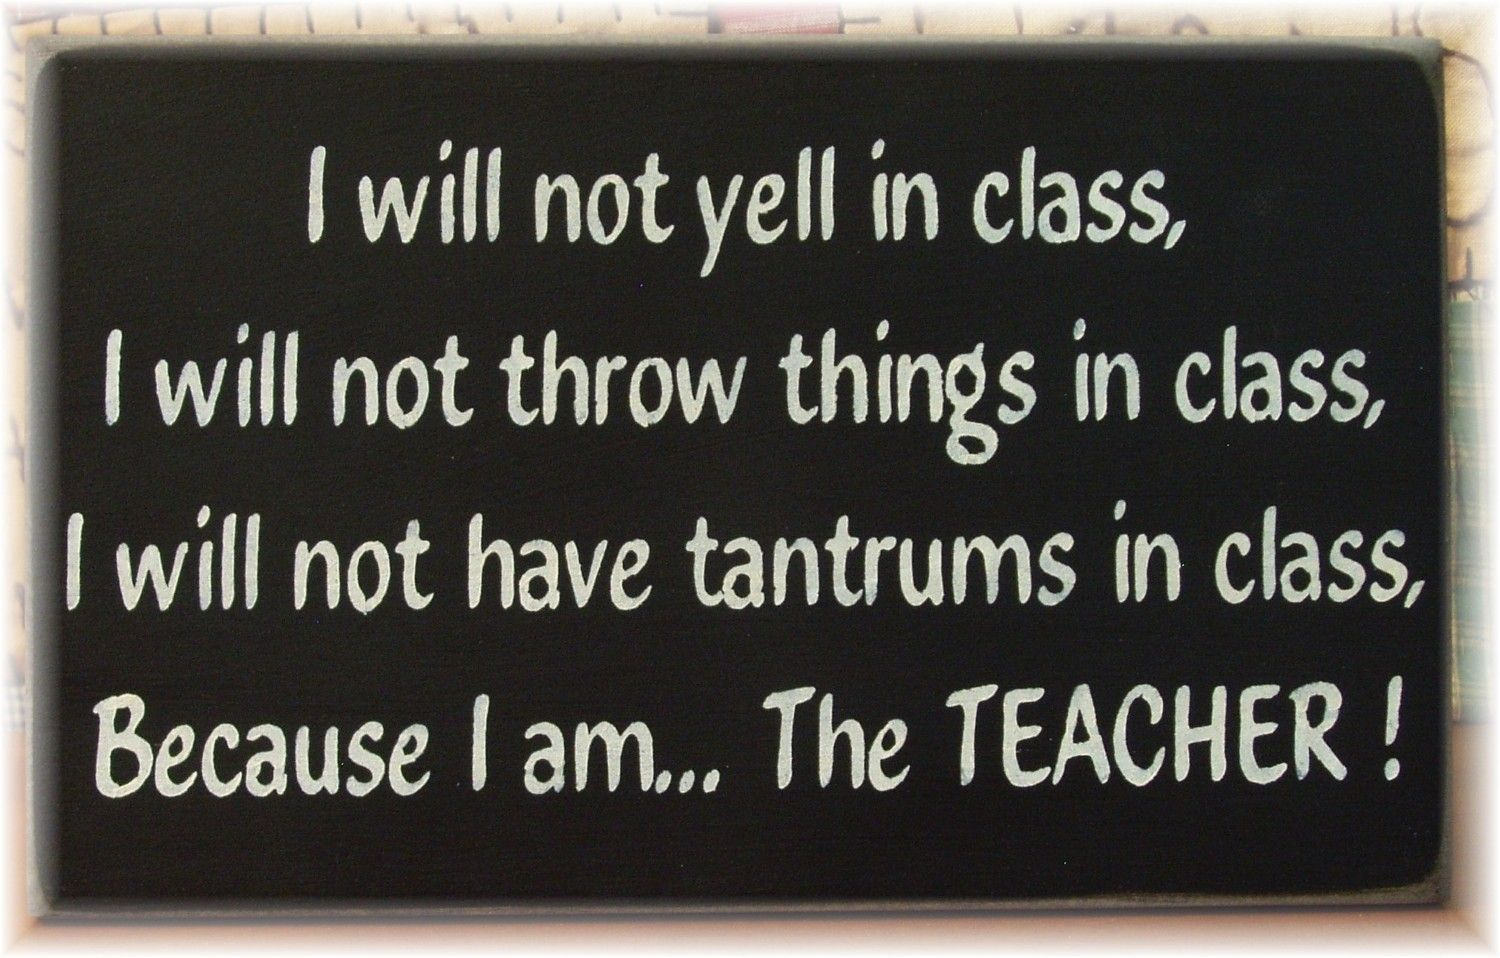 I will not yell in class... because I am the Teacher--- For Dal ;D